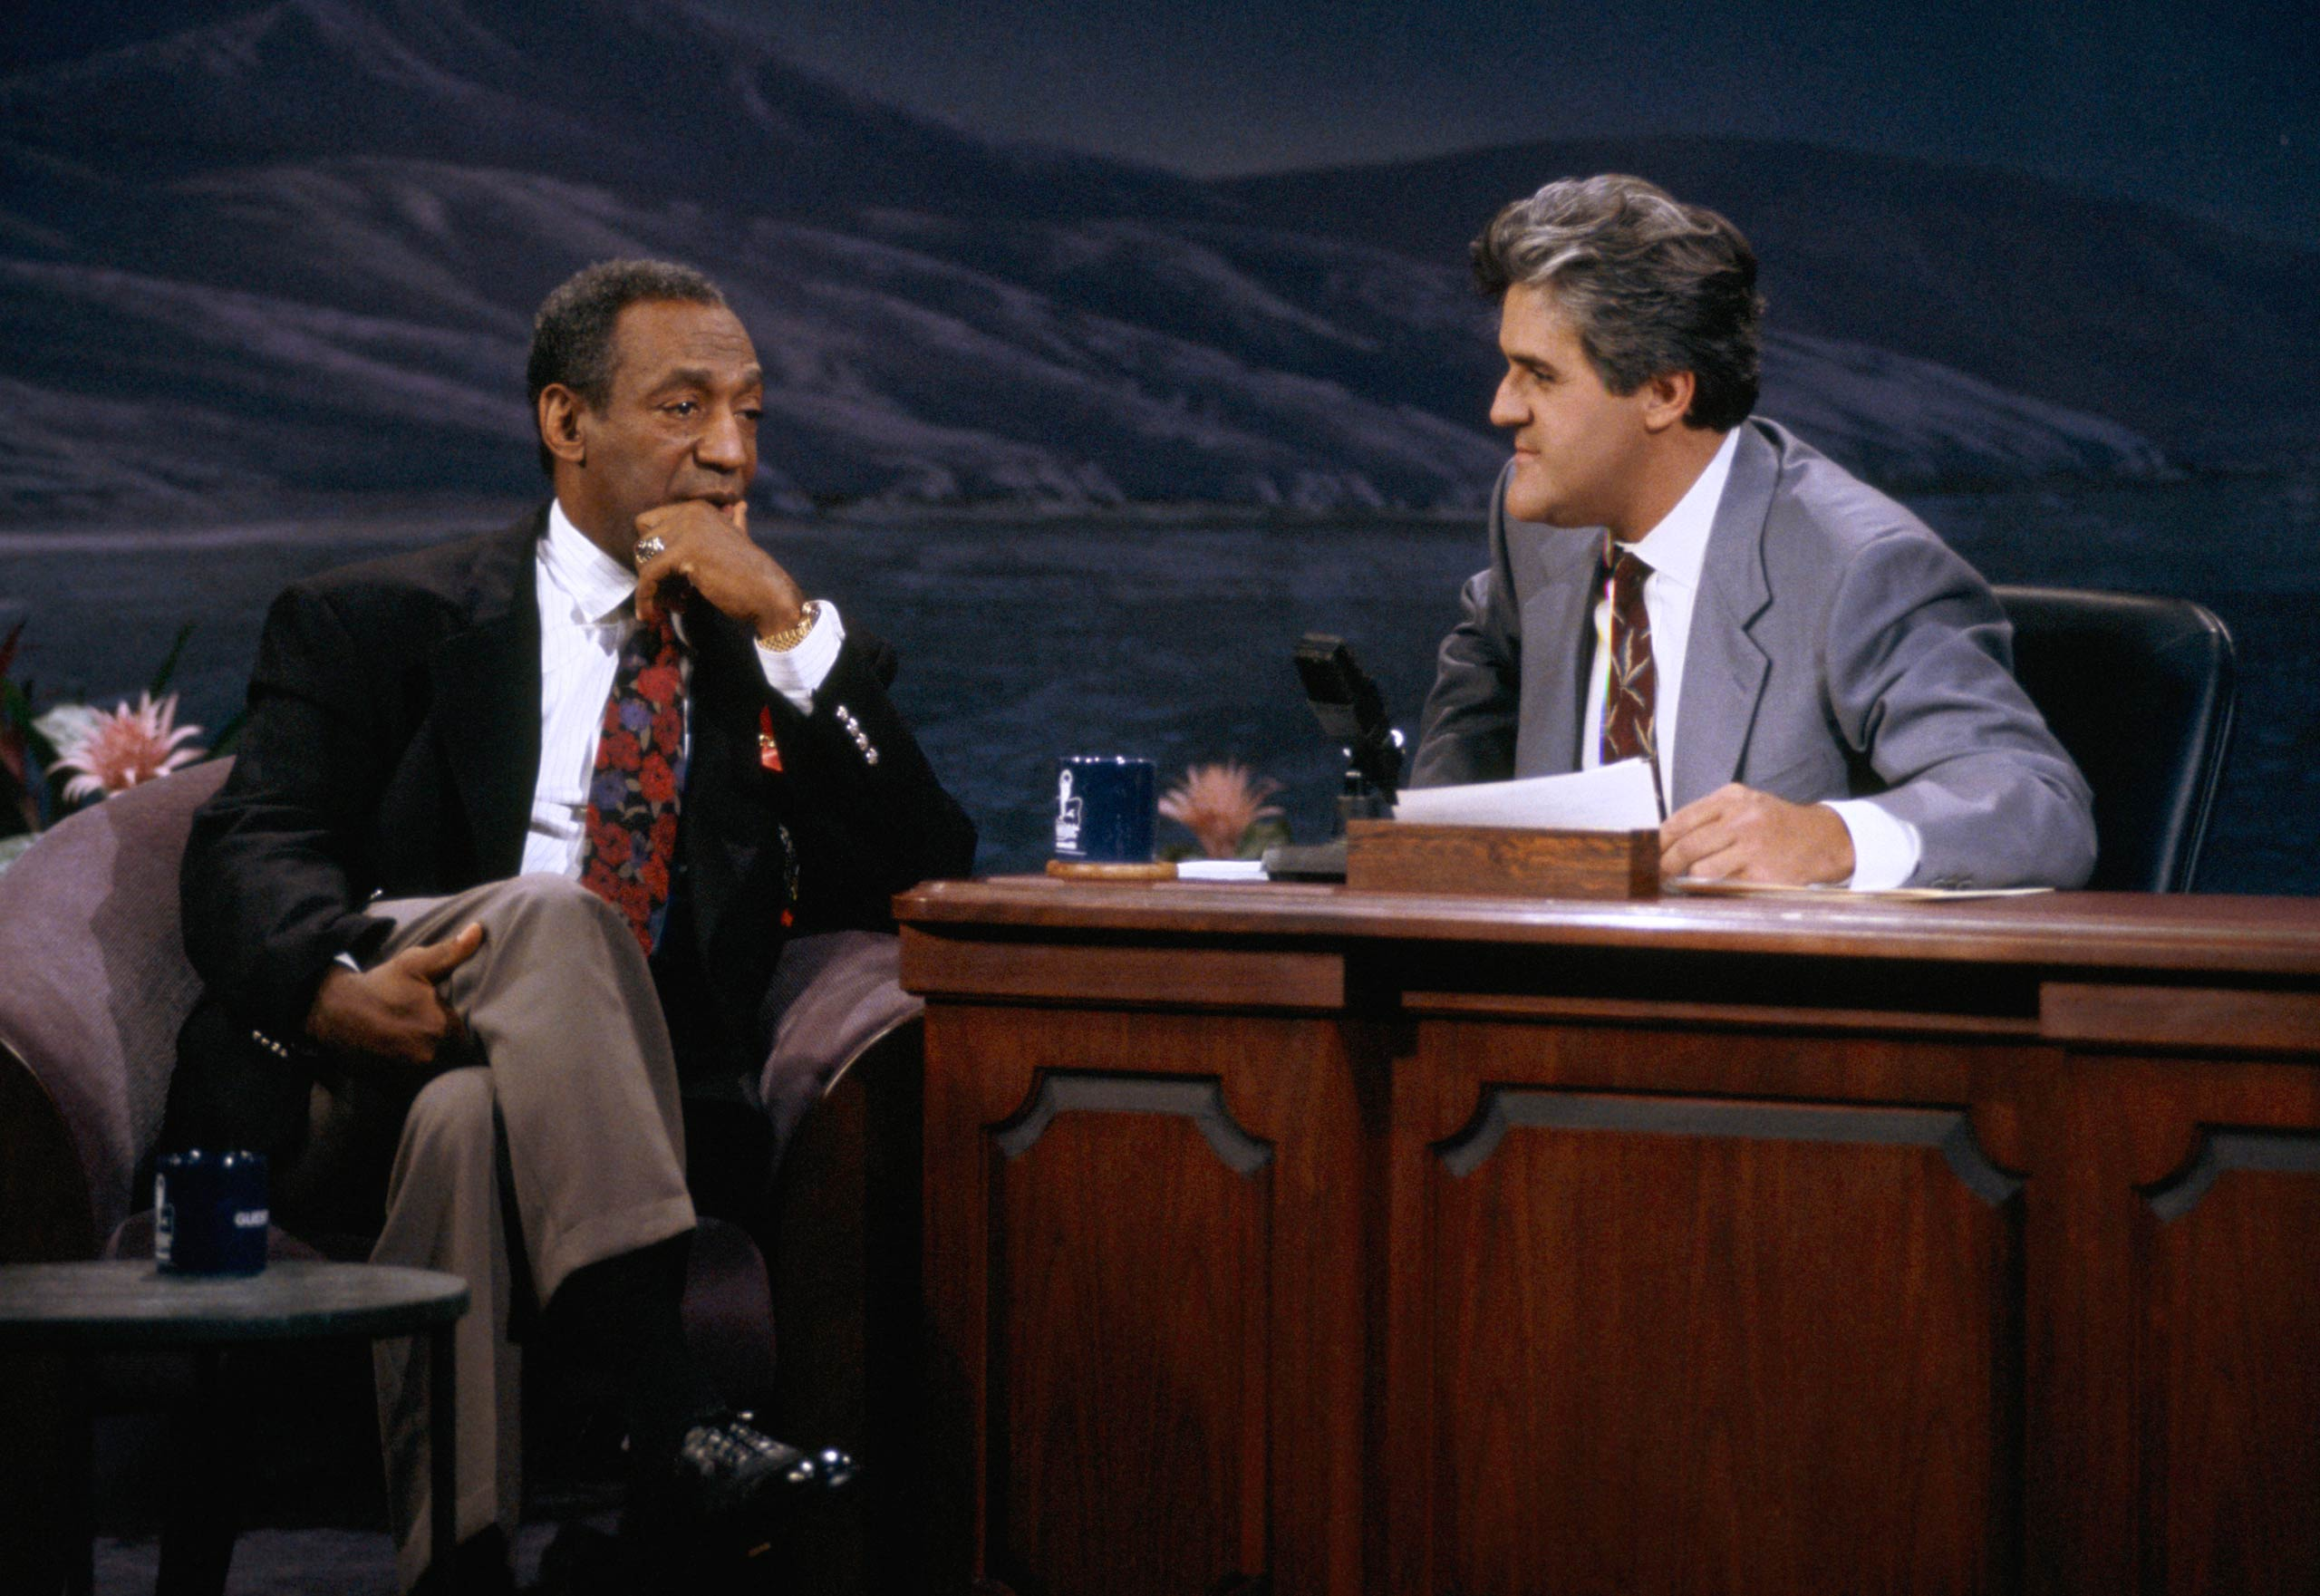 Bill Cosby is interviewed by Jay Leno on The Tonight Show With Jay Leno in 1992.